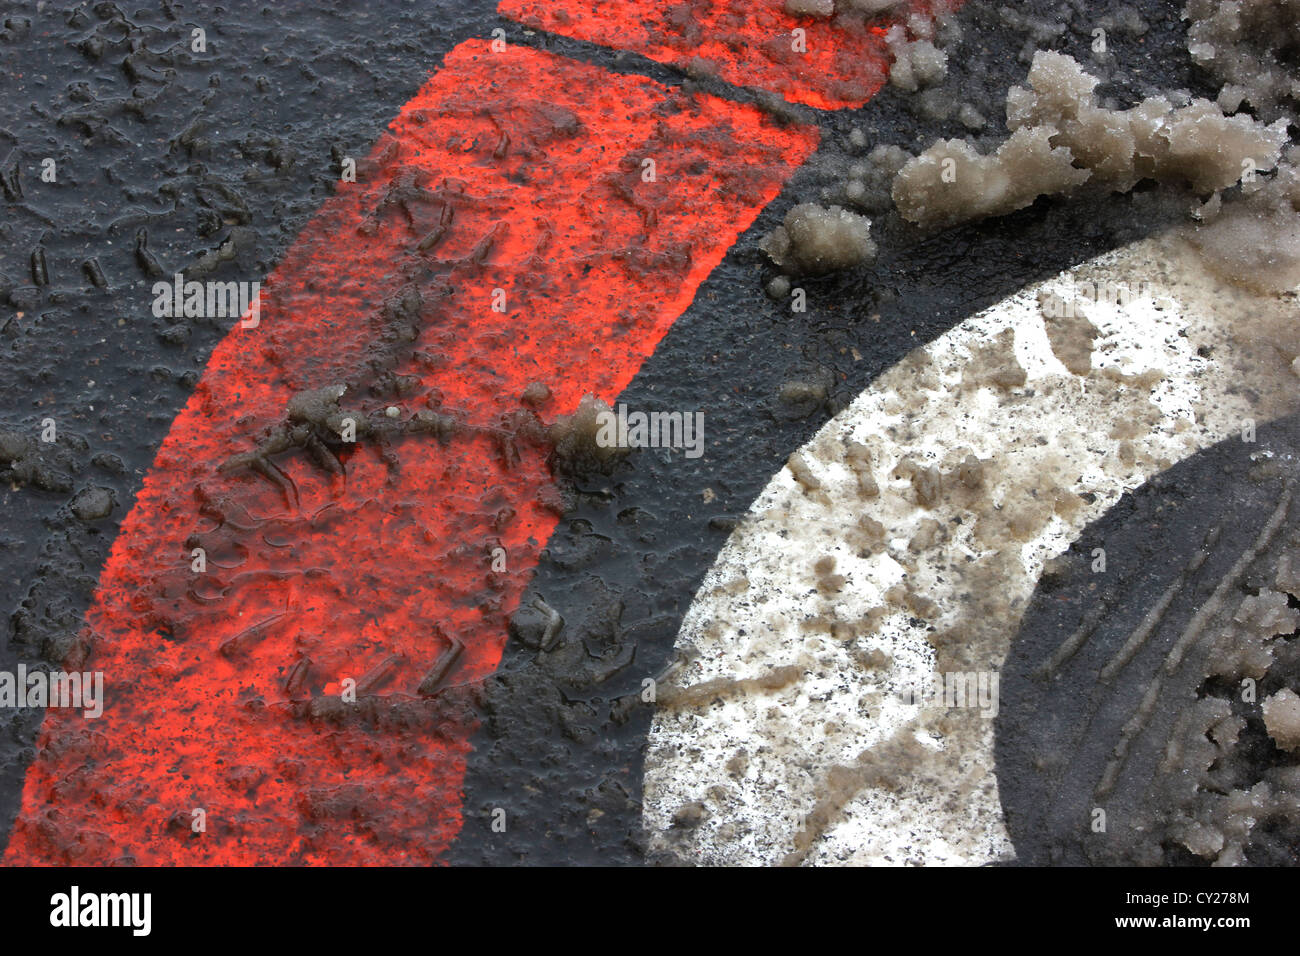 road ground signs, mushy, snow, icy dirty roads, bad weather, winter snowy bad road conditions, photoarkive - Stock Image